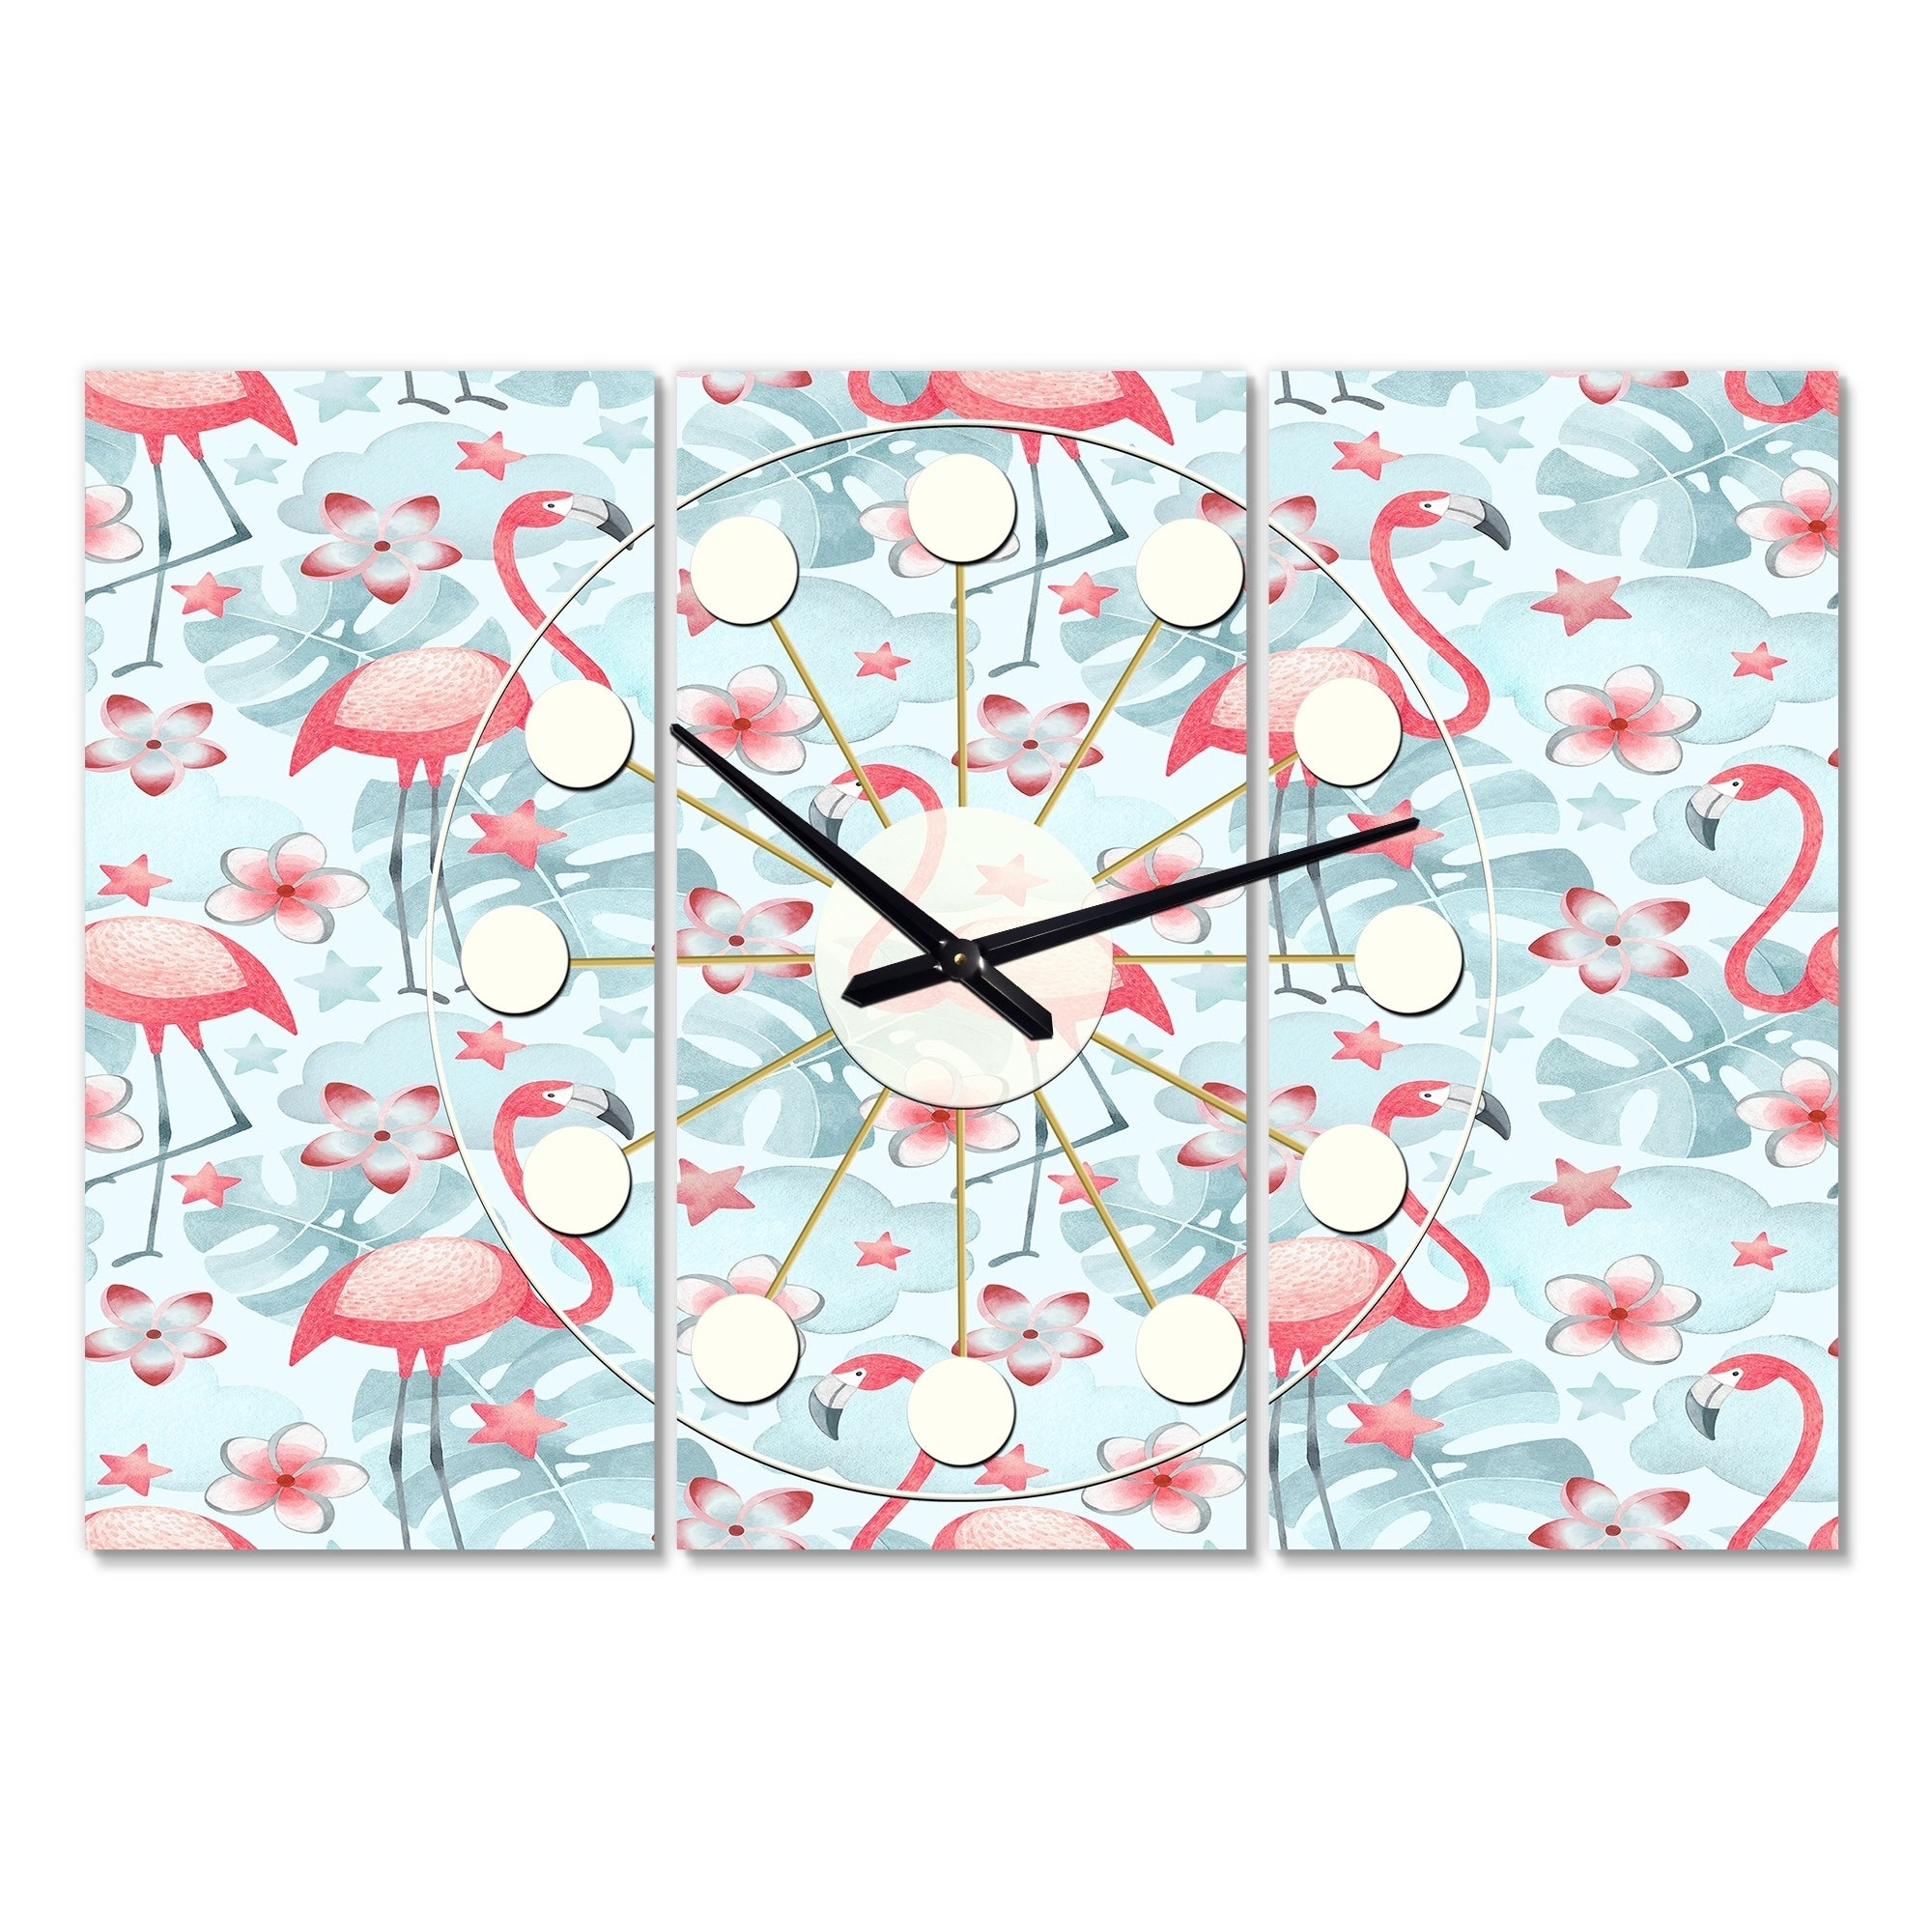 Designart Tropical Botanicals Flowers And Flamingo Iii Oversized Mid Century Wall Clock 3 Panels On Sale Overstock 28735846